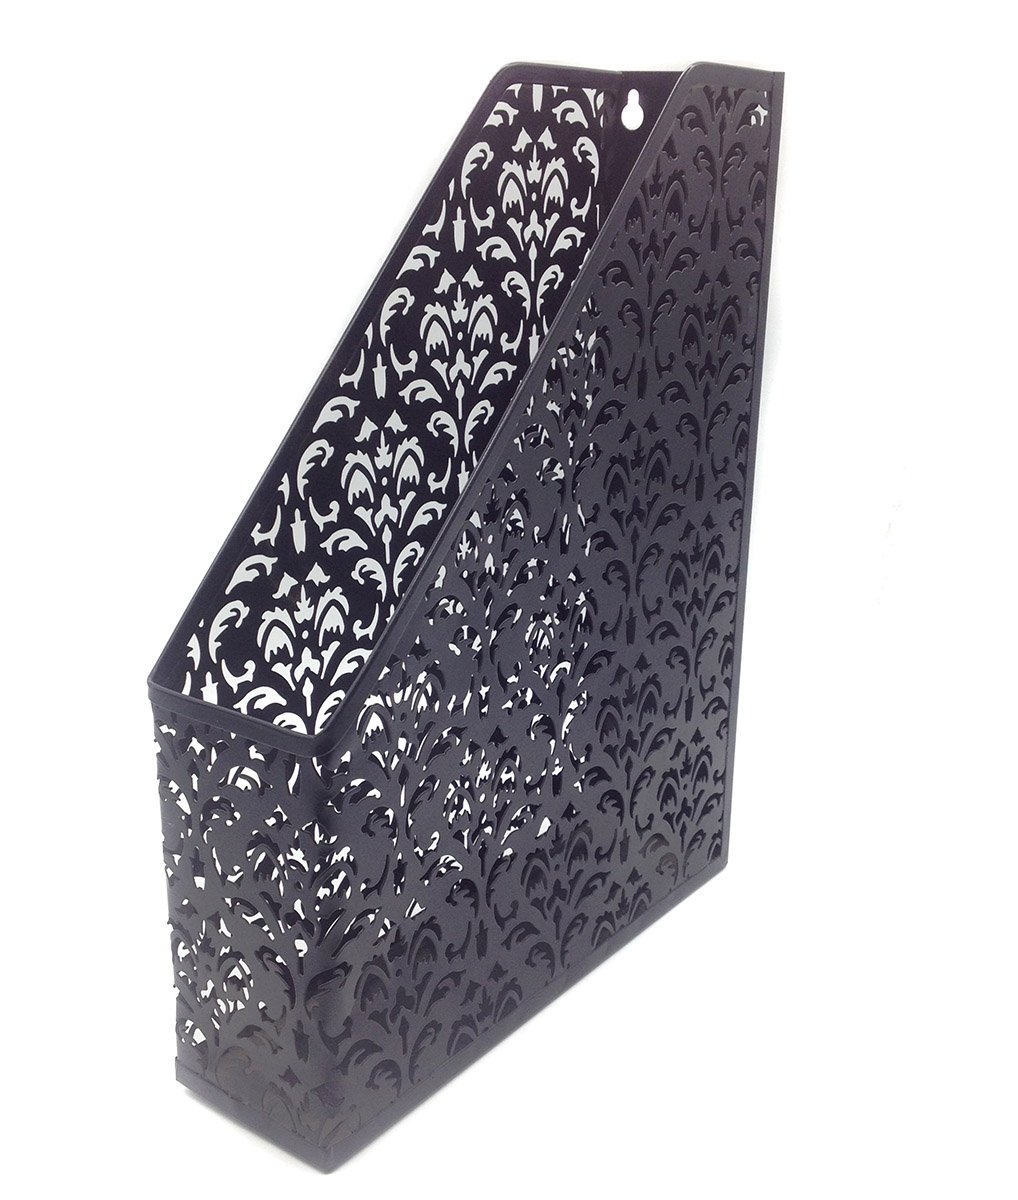 EasyPAG Carved Hollow Flower Pattern Office Desk File Holder Magazine Organizer,Black Baike